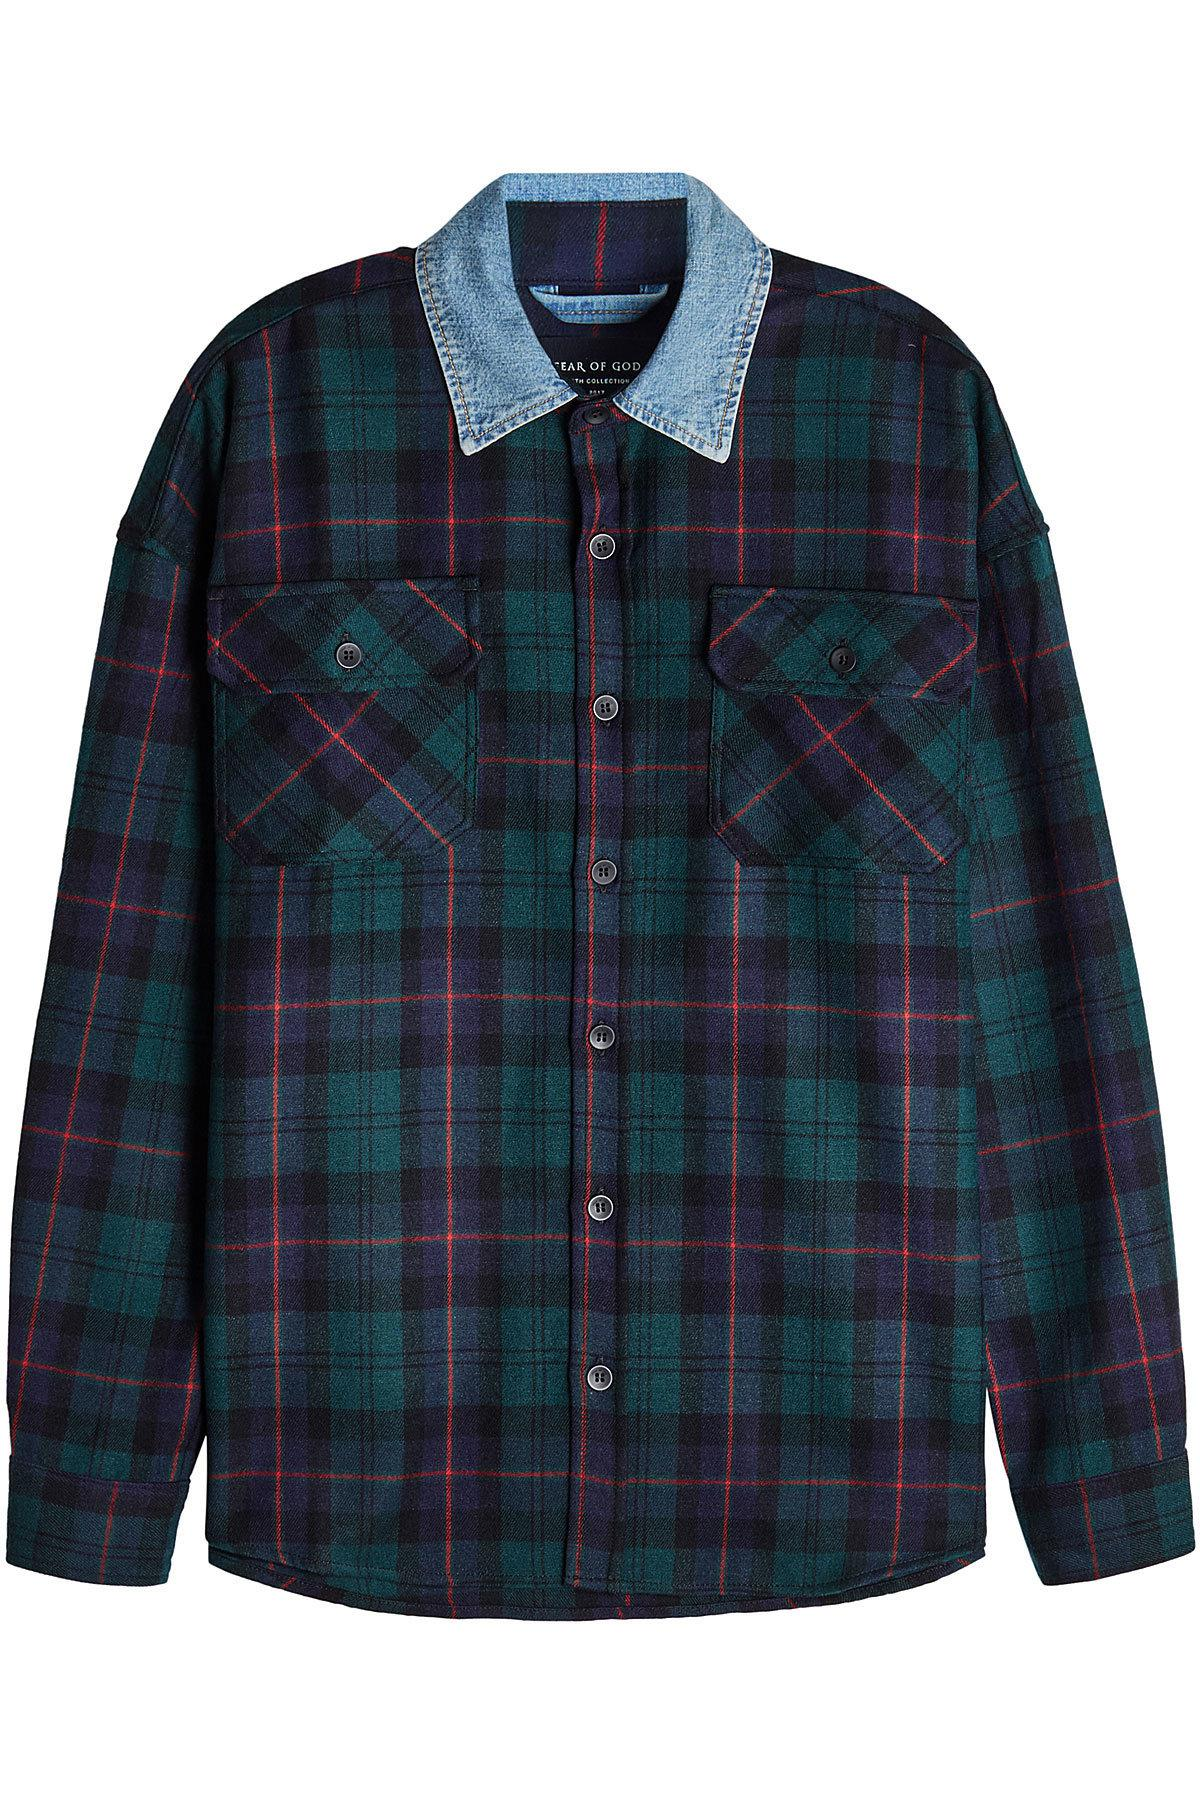 d5ac59667e Fear Of God Plaid Wool Shirt With Denim Collar in Blue for Men - Lyst